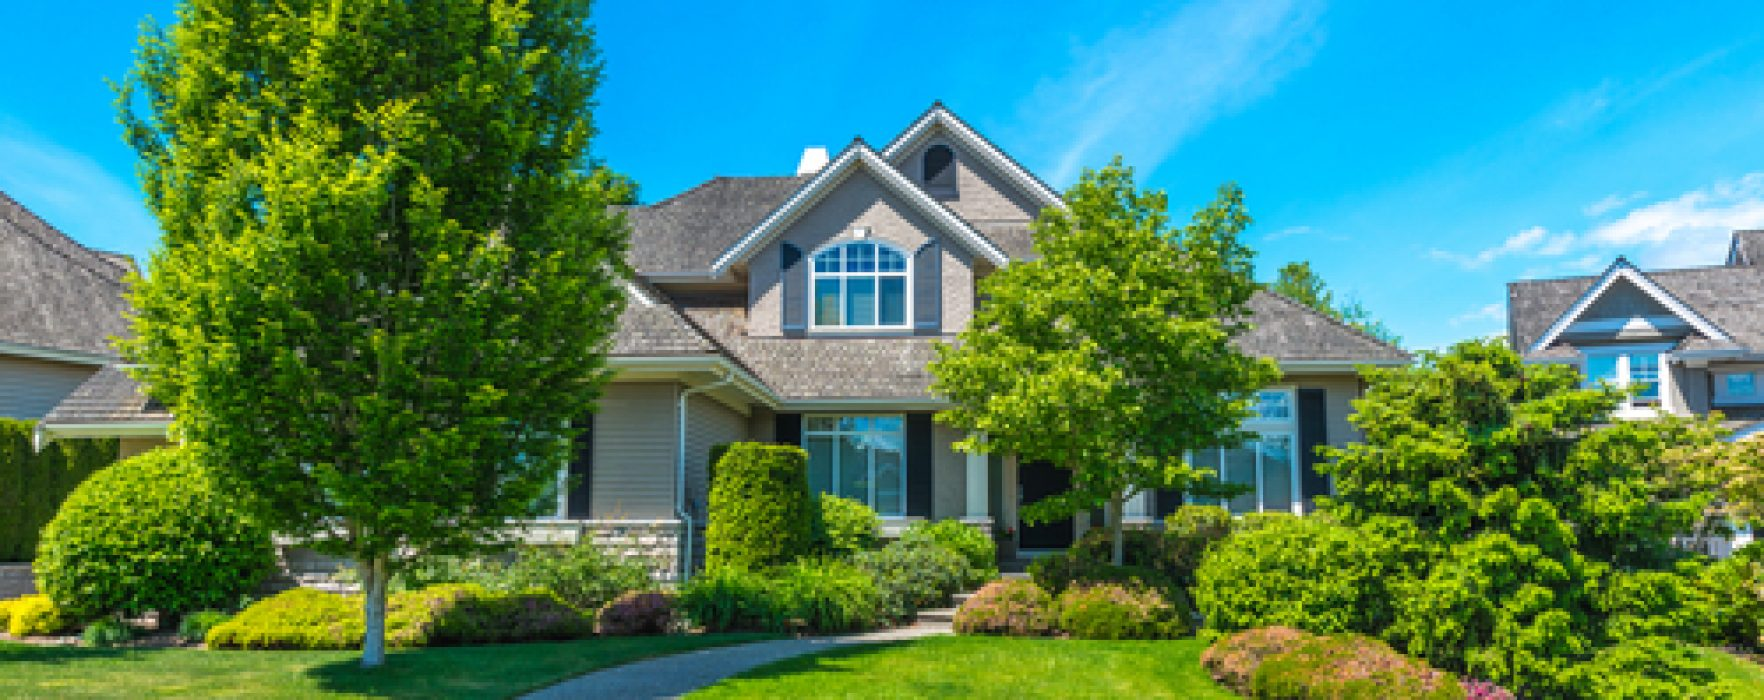 ... Boost Your Homeu0027s Curb Appeal With Breathtaking Front Yard Landscaping  Ideas ...